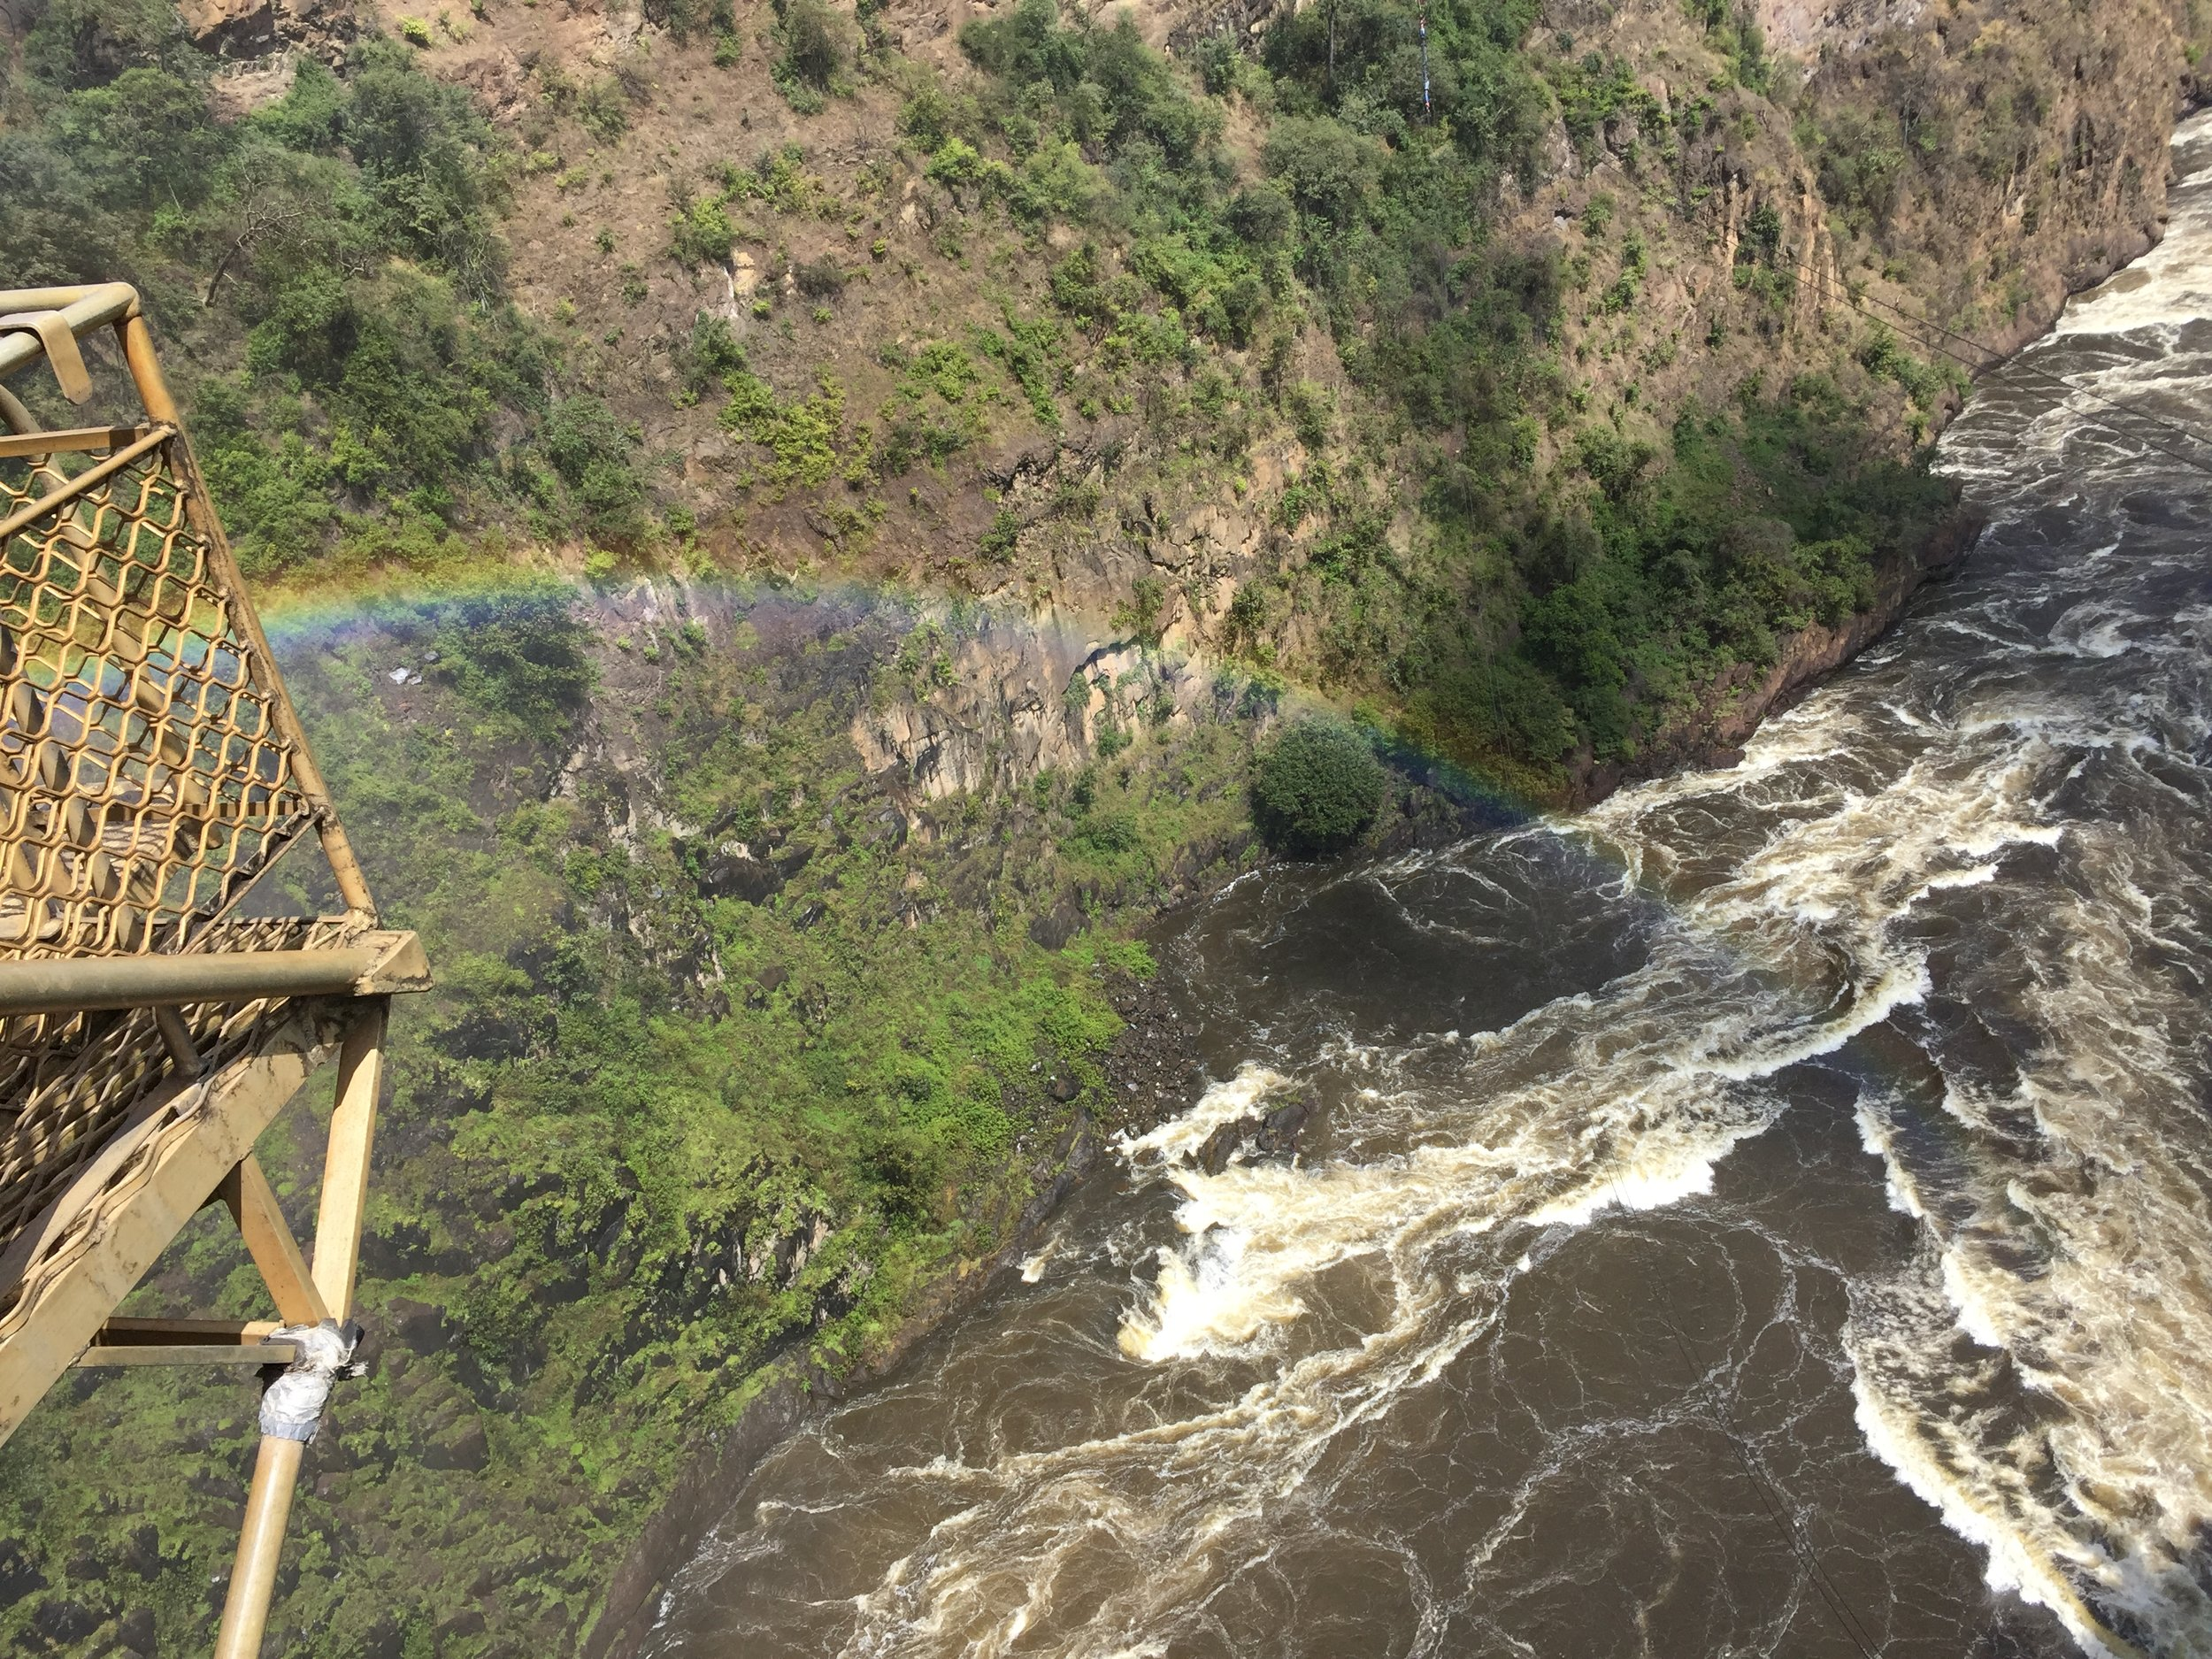 Views from the bungee cage at the top of Vic Falls Bridge.